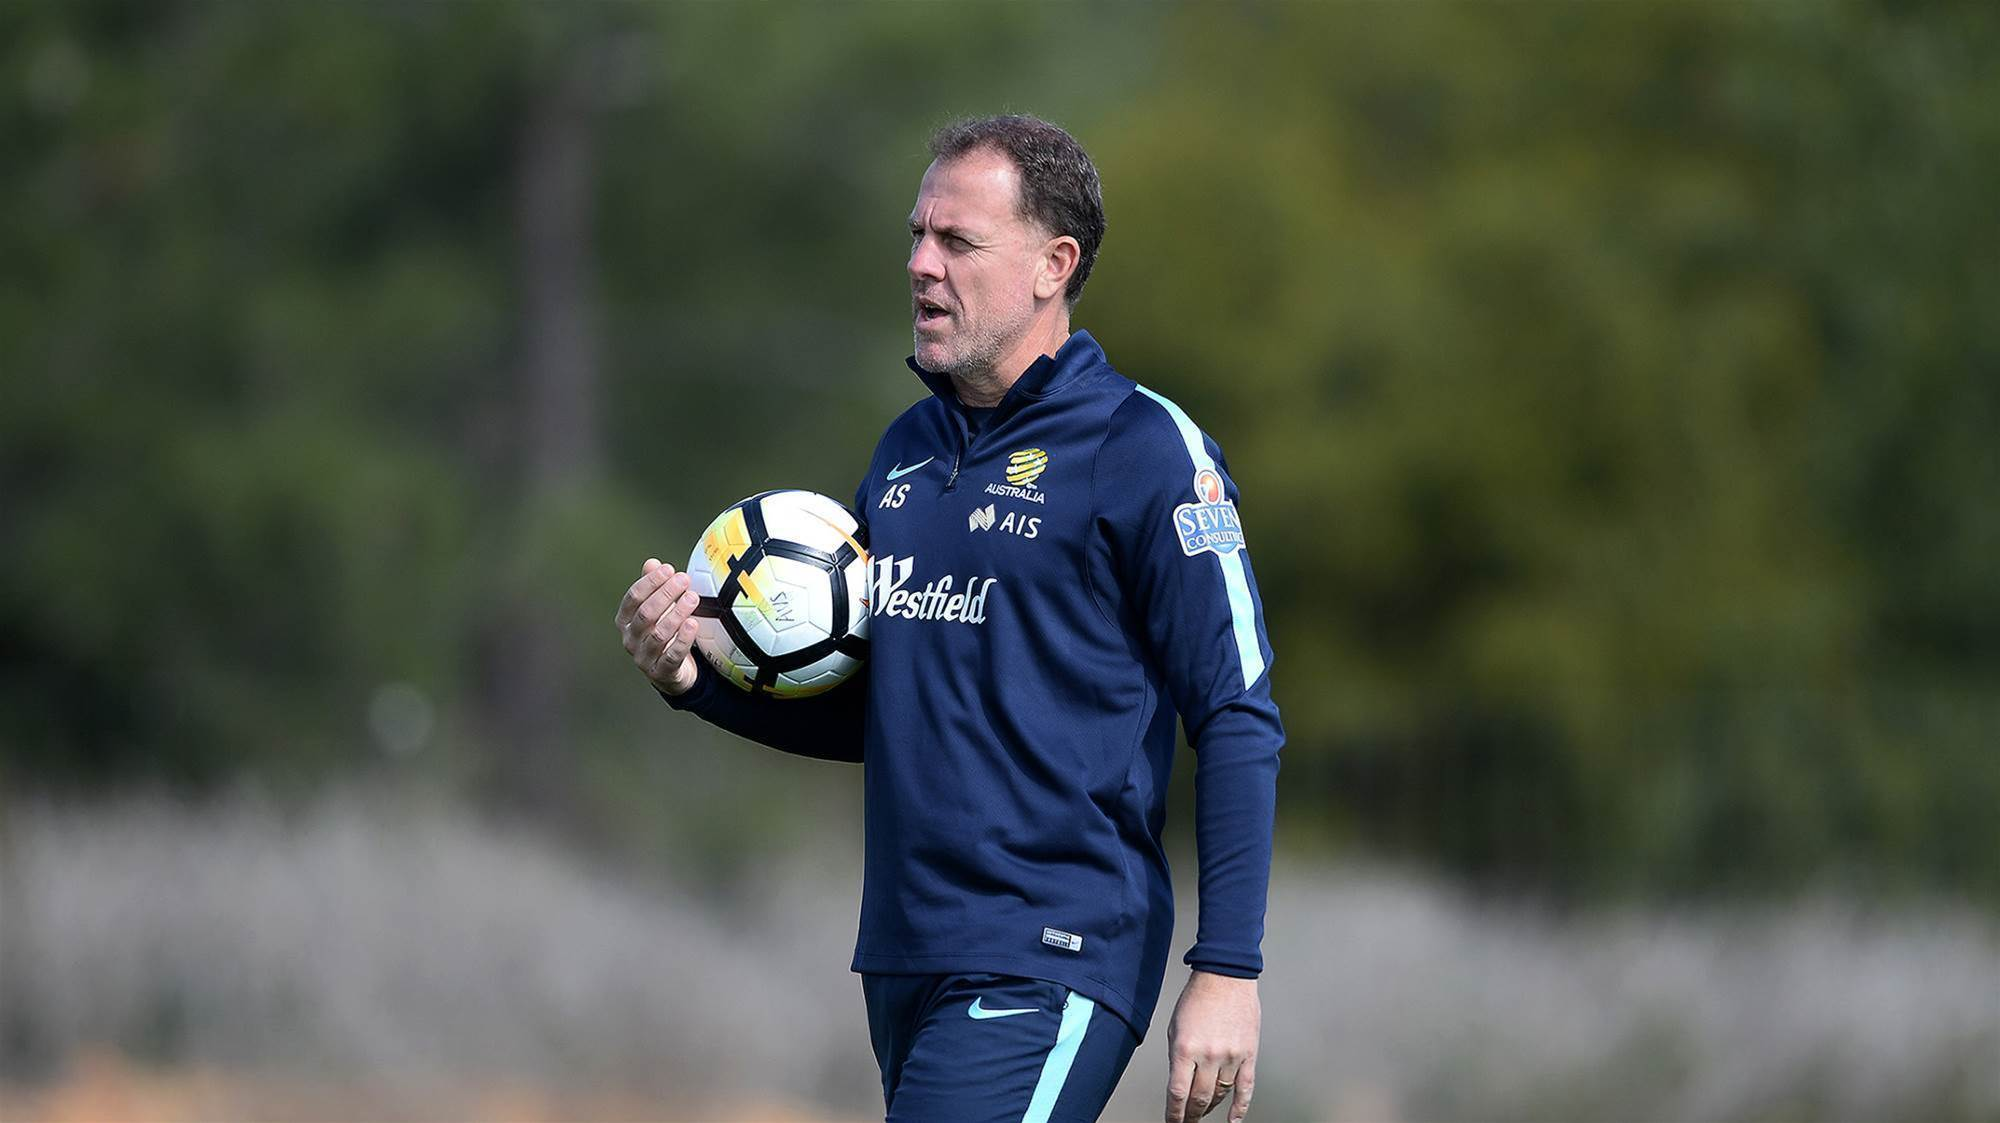 Stajcic: The Matildas have more to show